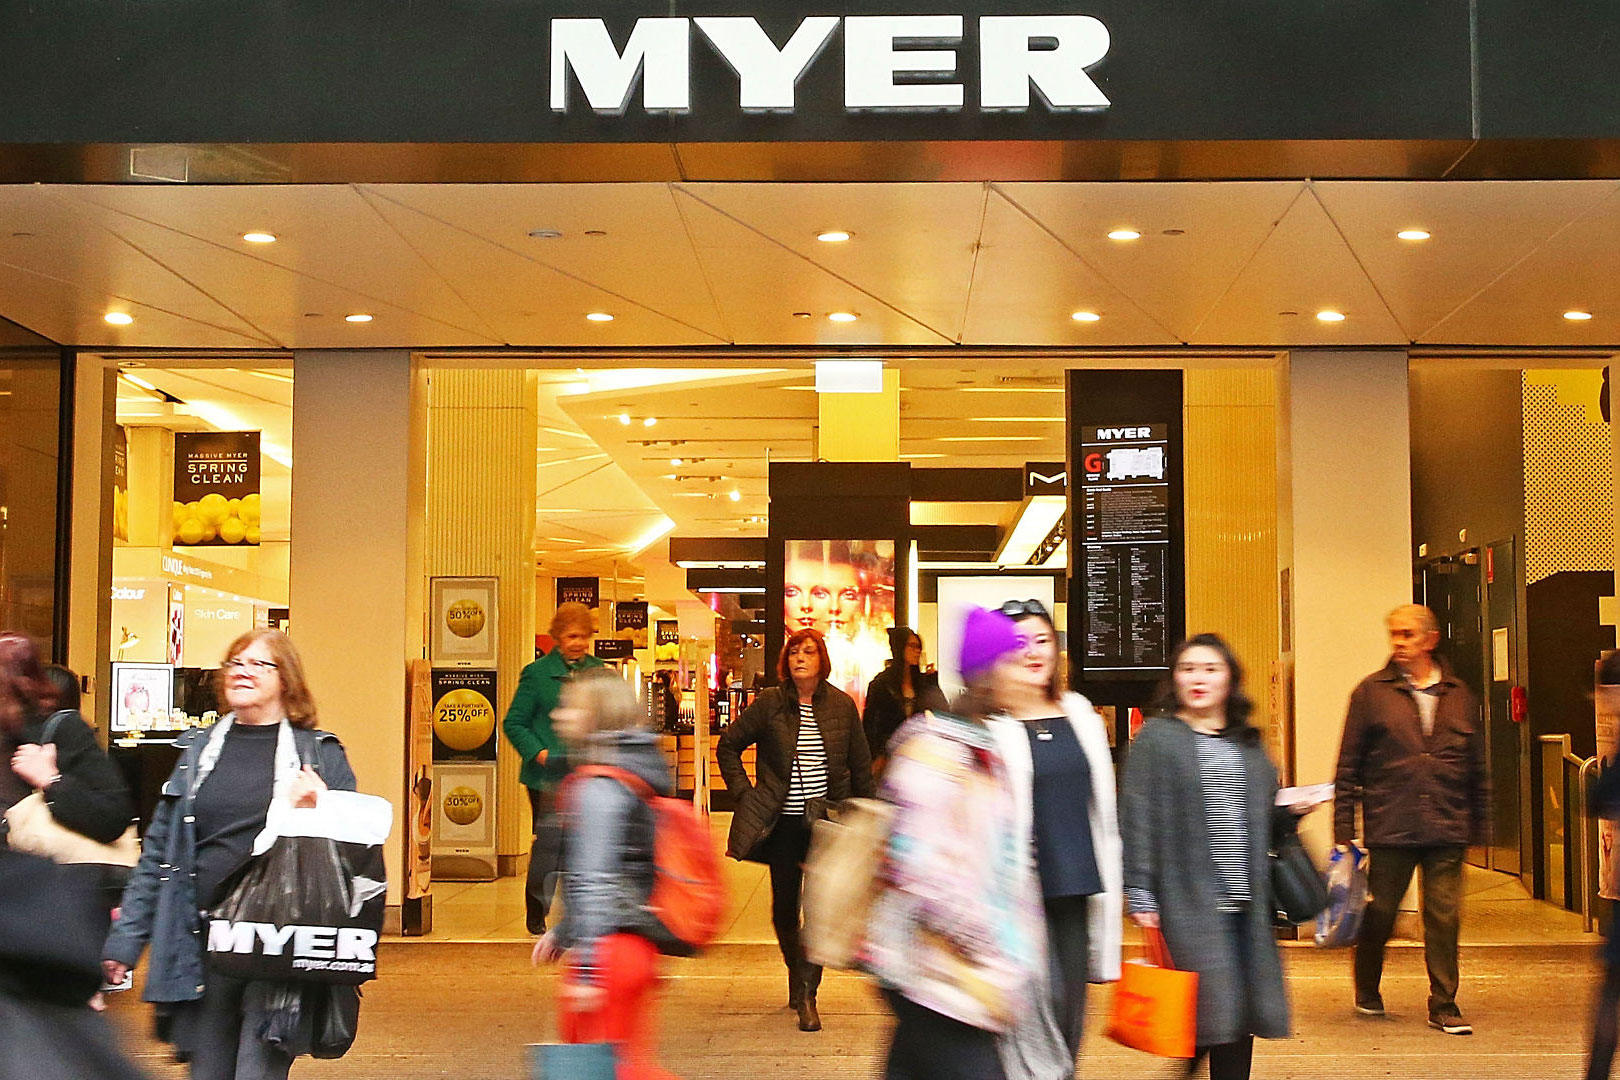 Myer partnered with Father James Grant Foundation to tackle Youth Unemployment